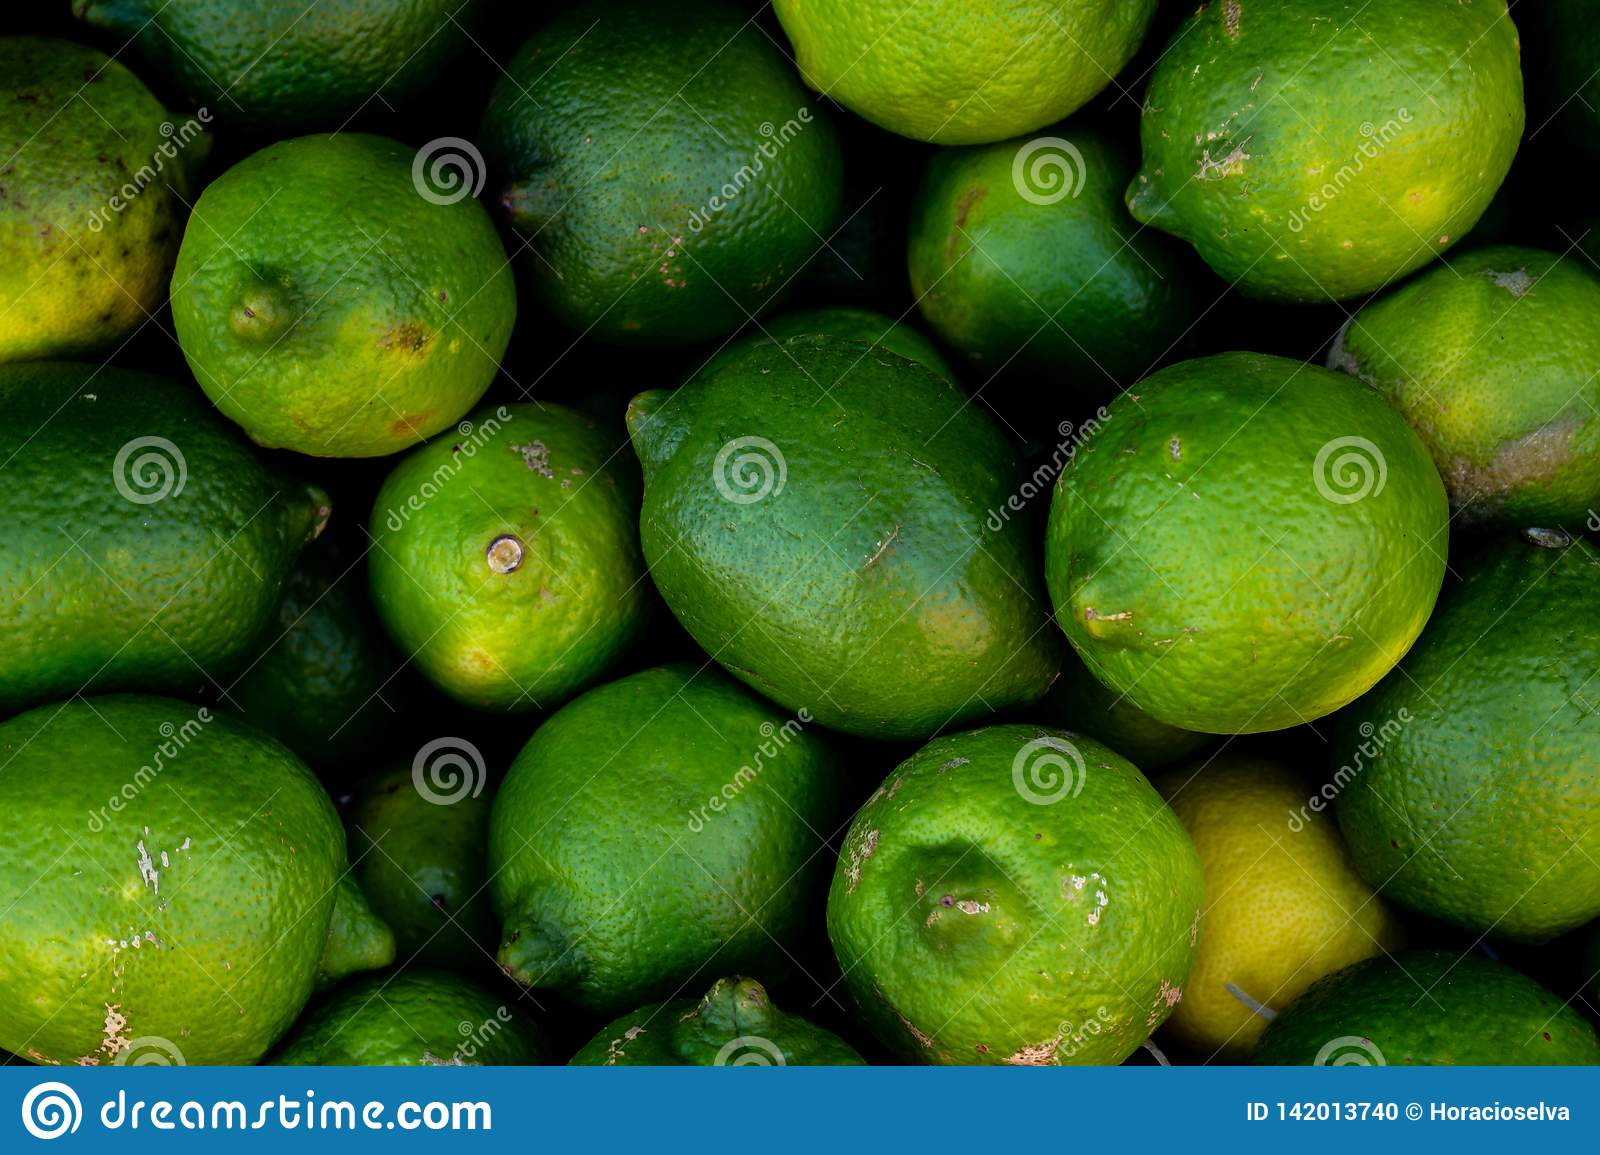 Close view of several green lemons. Of vibrant green and yellow colors